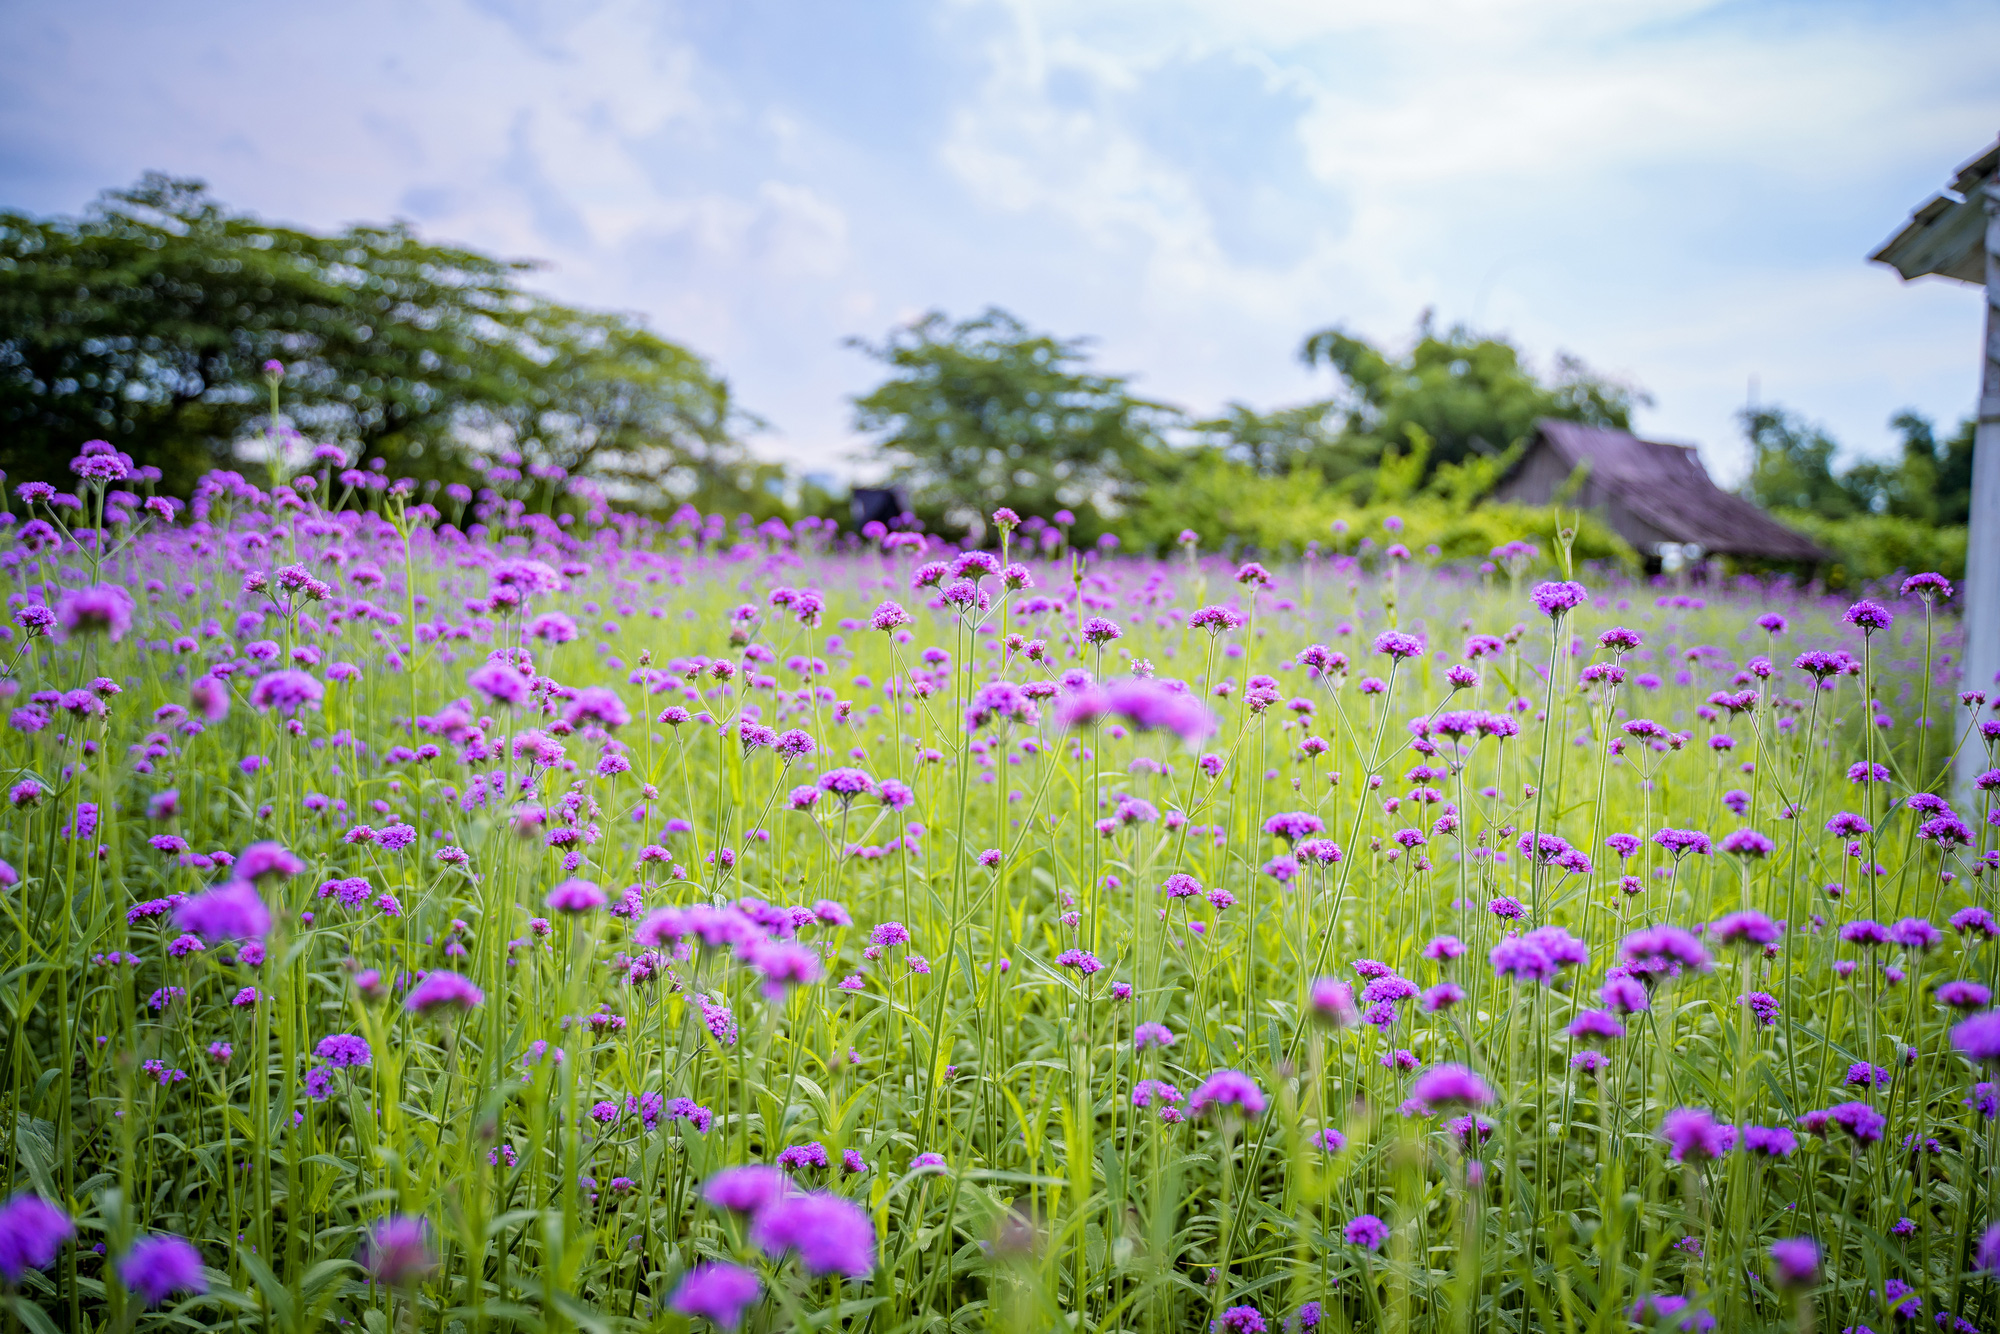 Purpletop plants are in bloom at a farm at the Long Bien flower plateau in Hanoi, Vietnam. Photo: Pham Tuan / Tuoi Tre